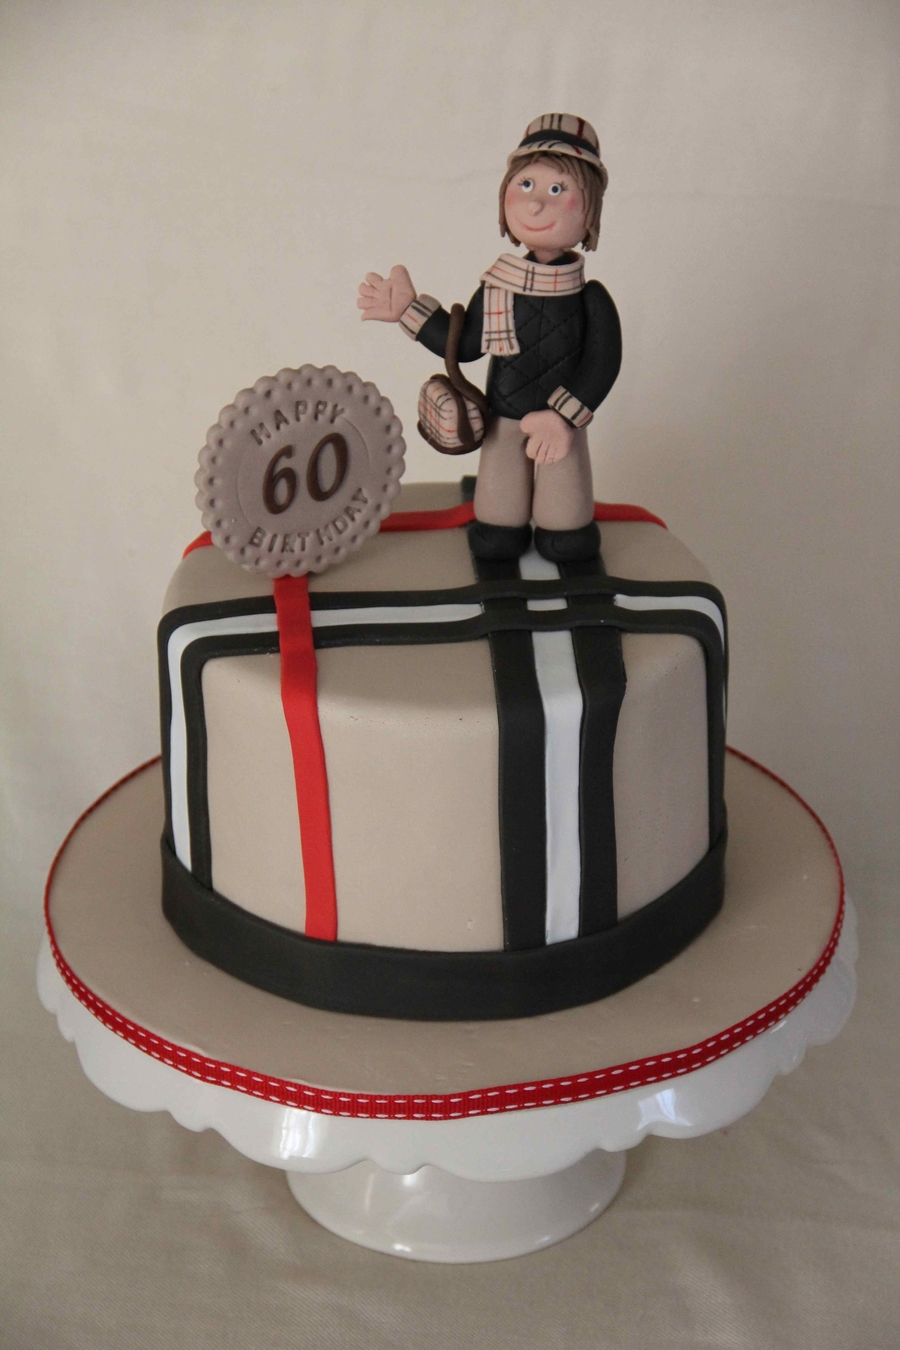 Burberry Cake For 60Th Birthday on Cake Central